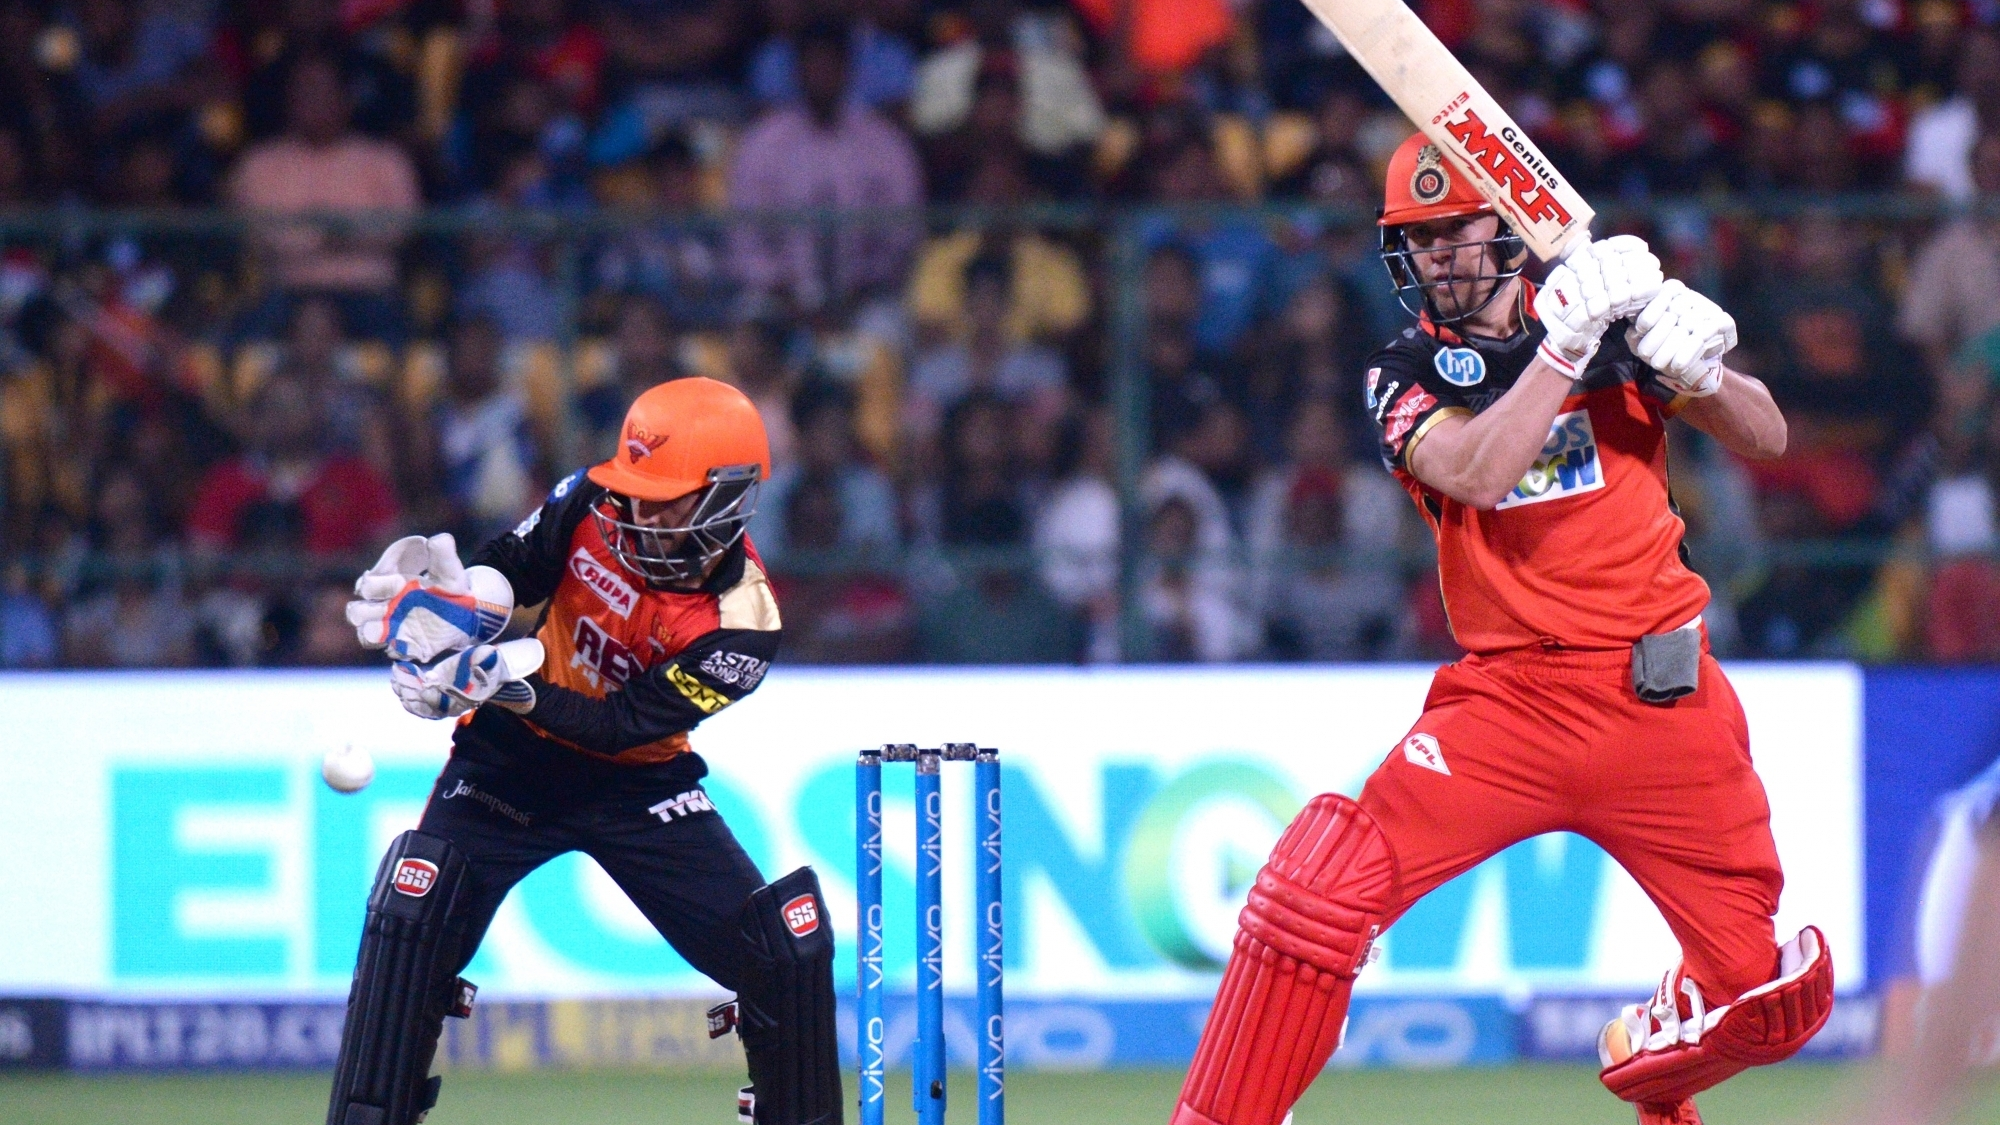 IPL 2018: Twitter reacts as AB de Villiers-Moeen Ali batting clinic put RCB in a commanding position against SRH